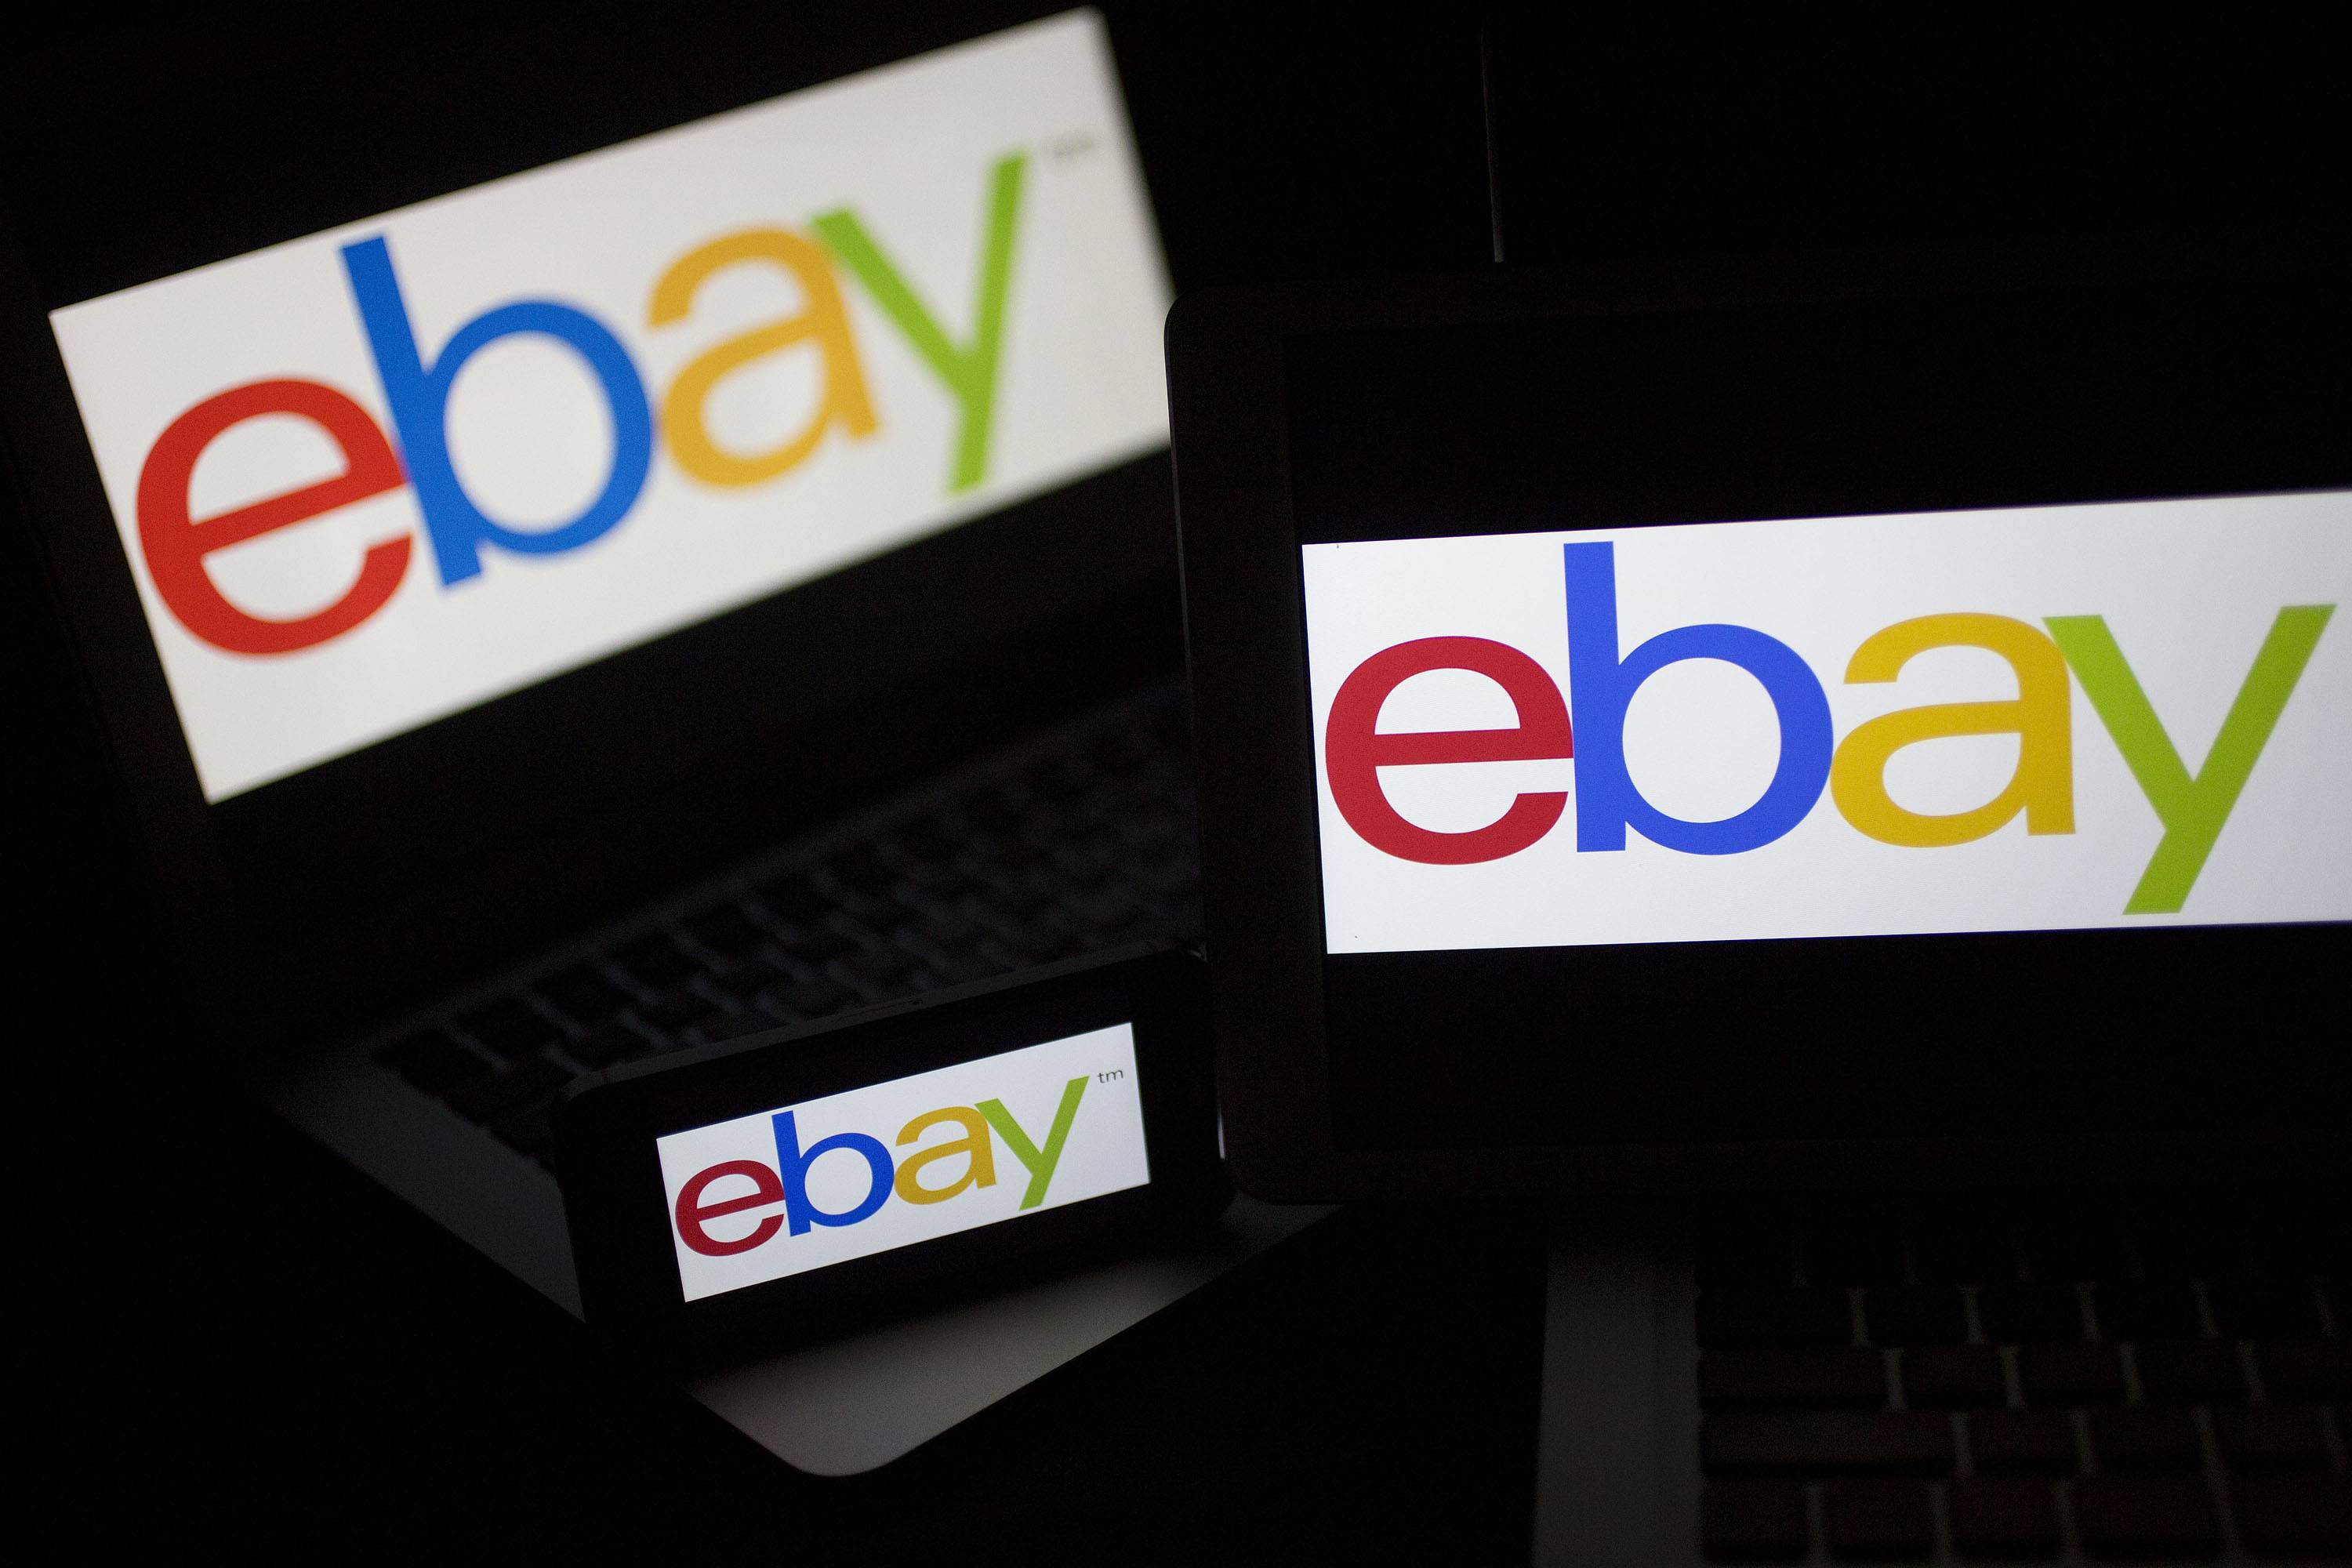 The Justice Department said Thursday that it has settled a lawsuit against eBay that accused the company of anticompetitive practices in the recruitment and hiring of skilled employees.